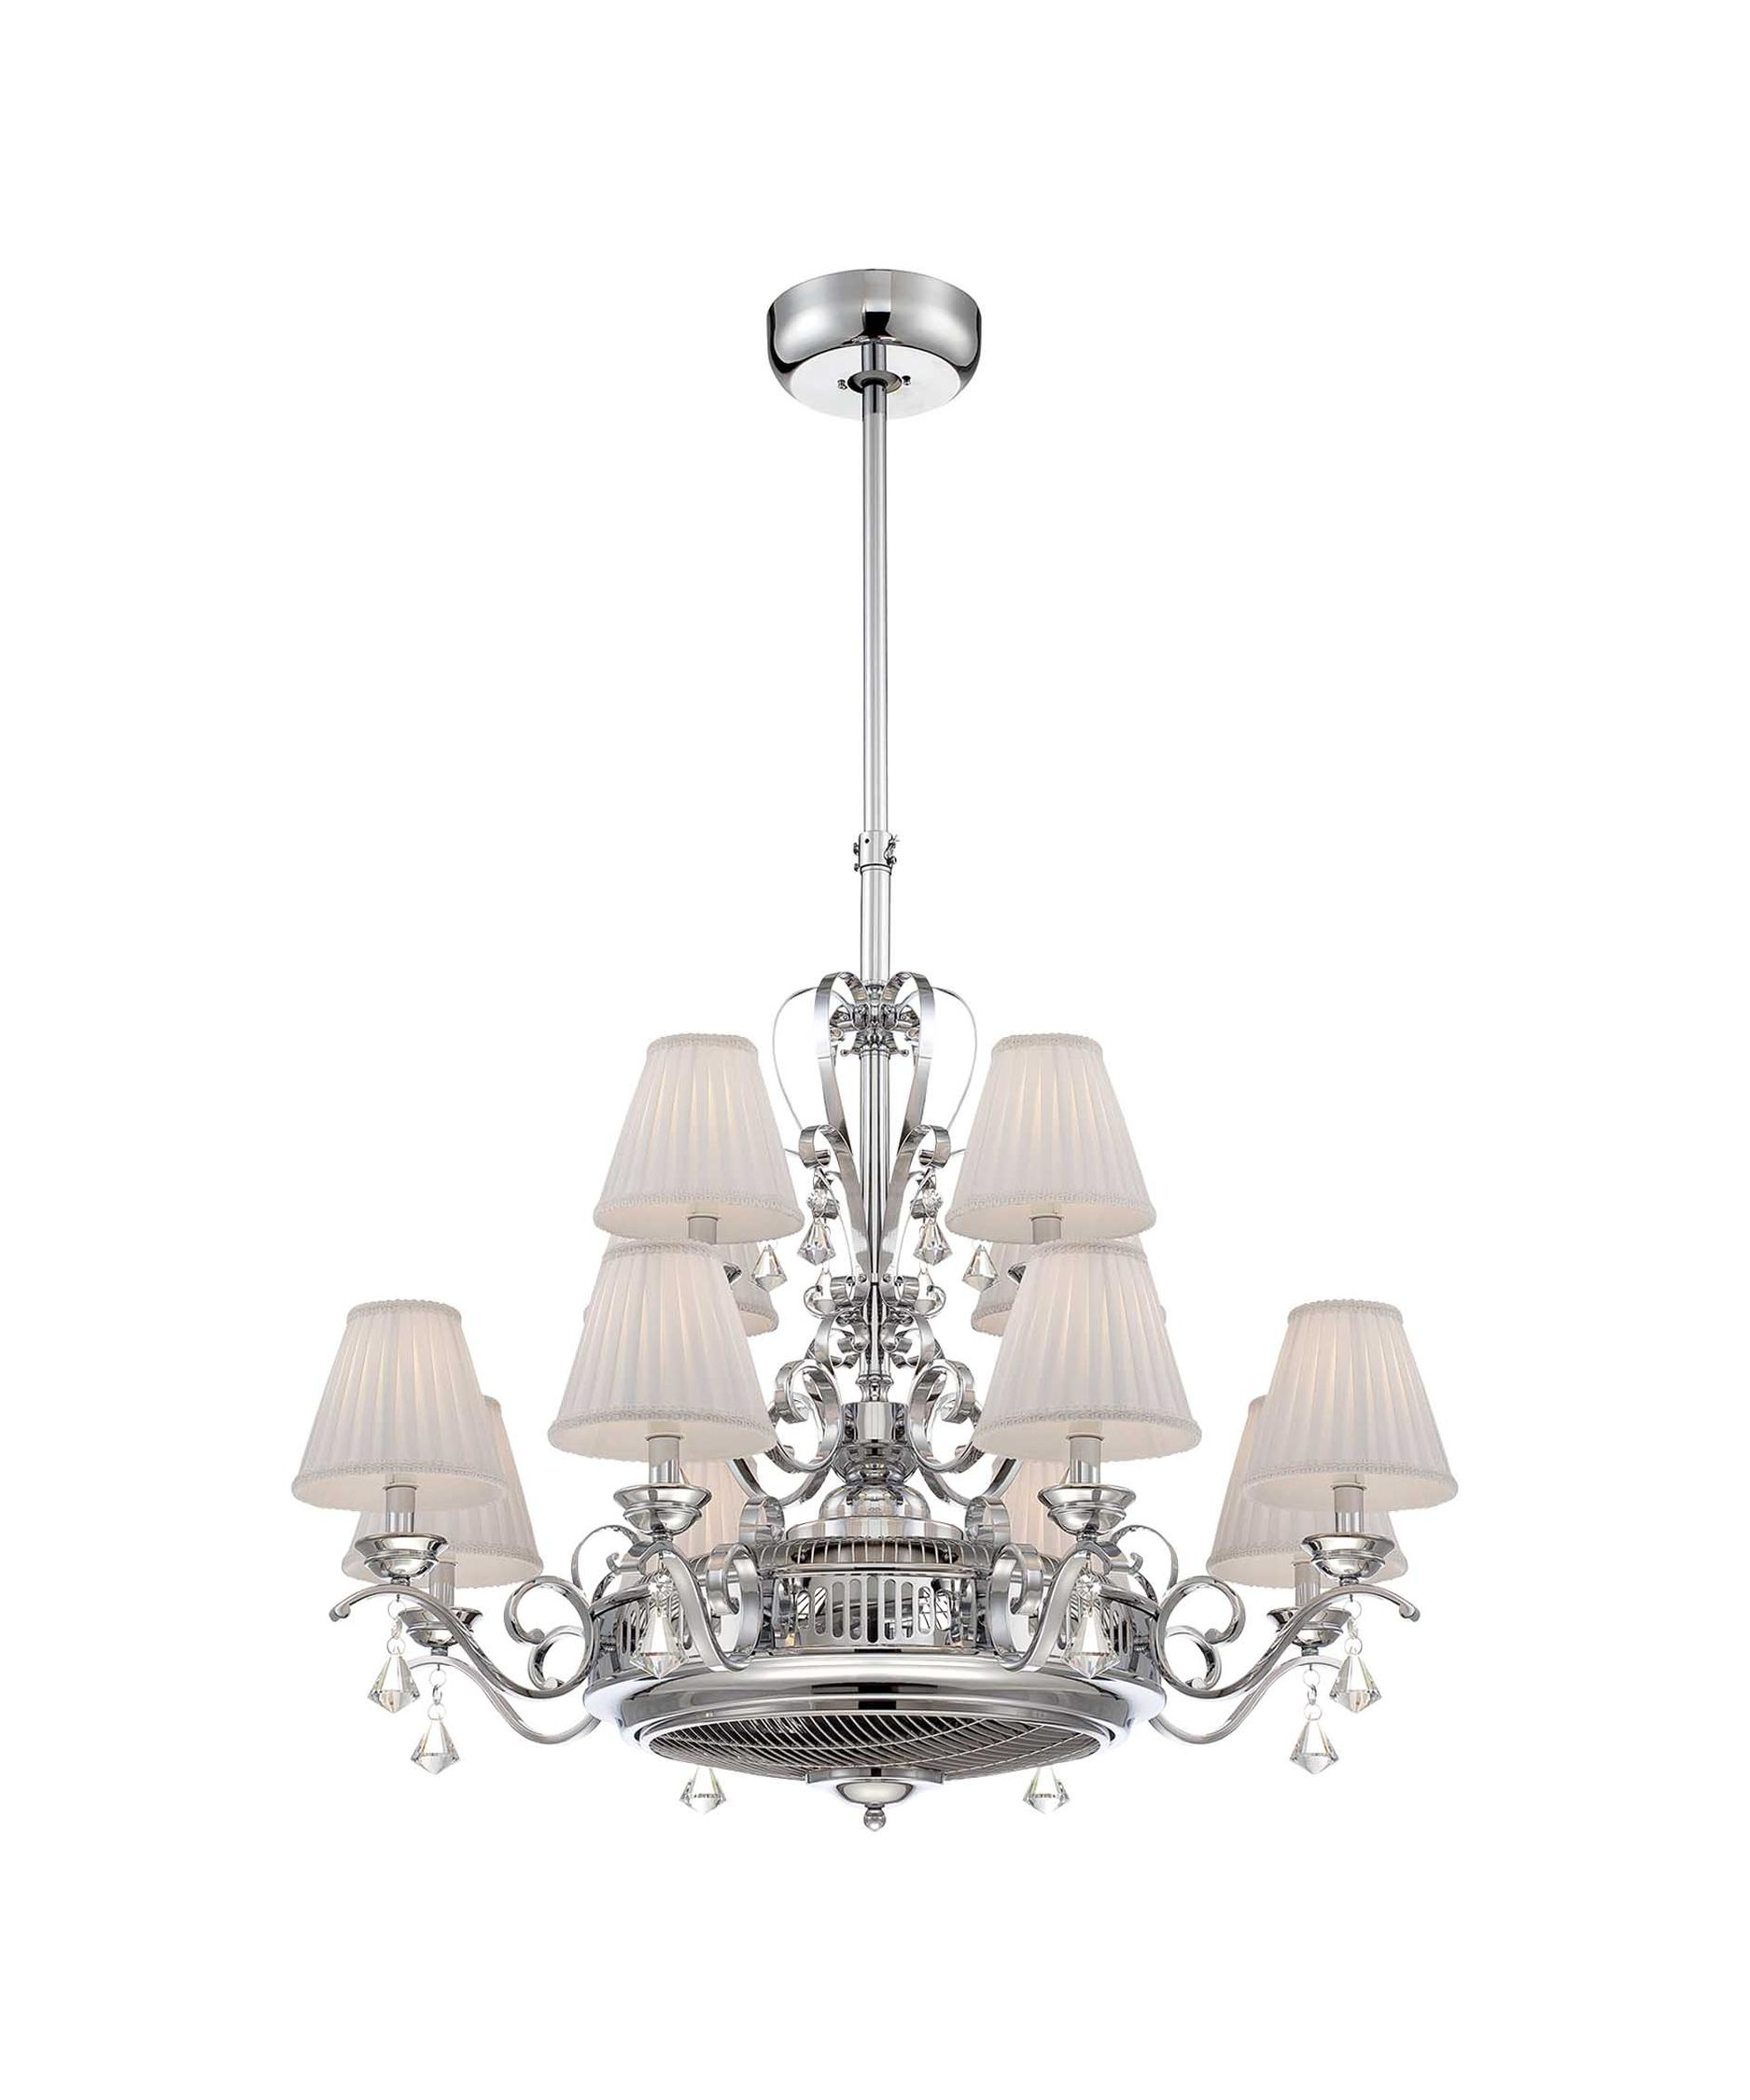 shown in chrome finish and white shade - Savoy Lighting